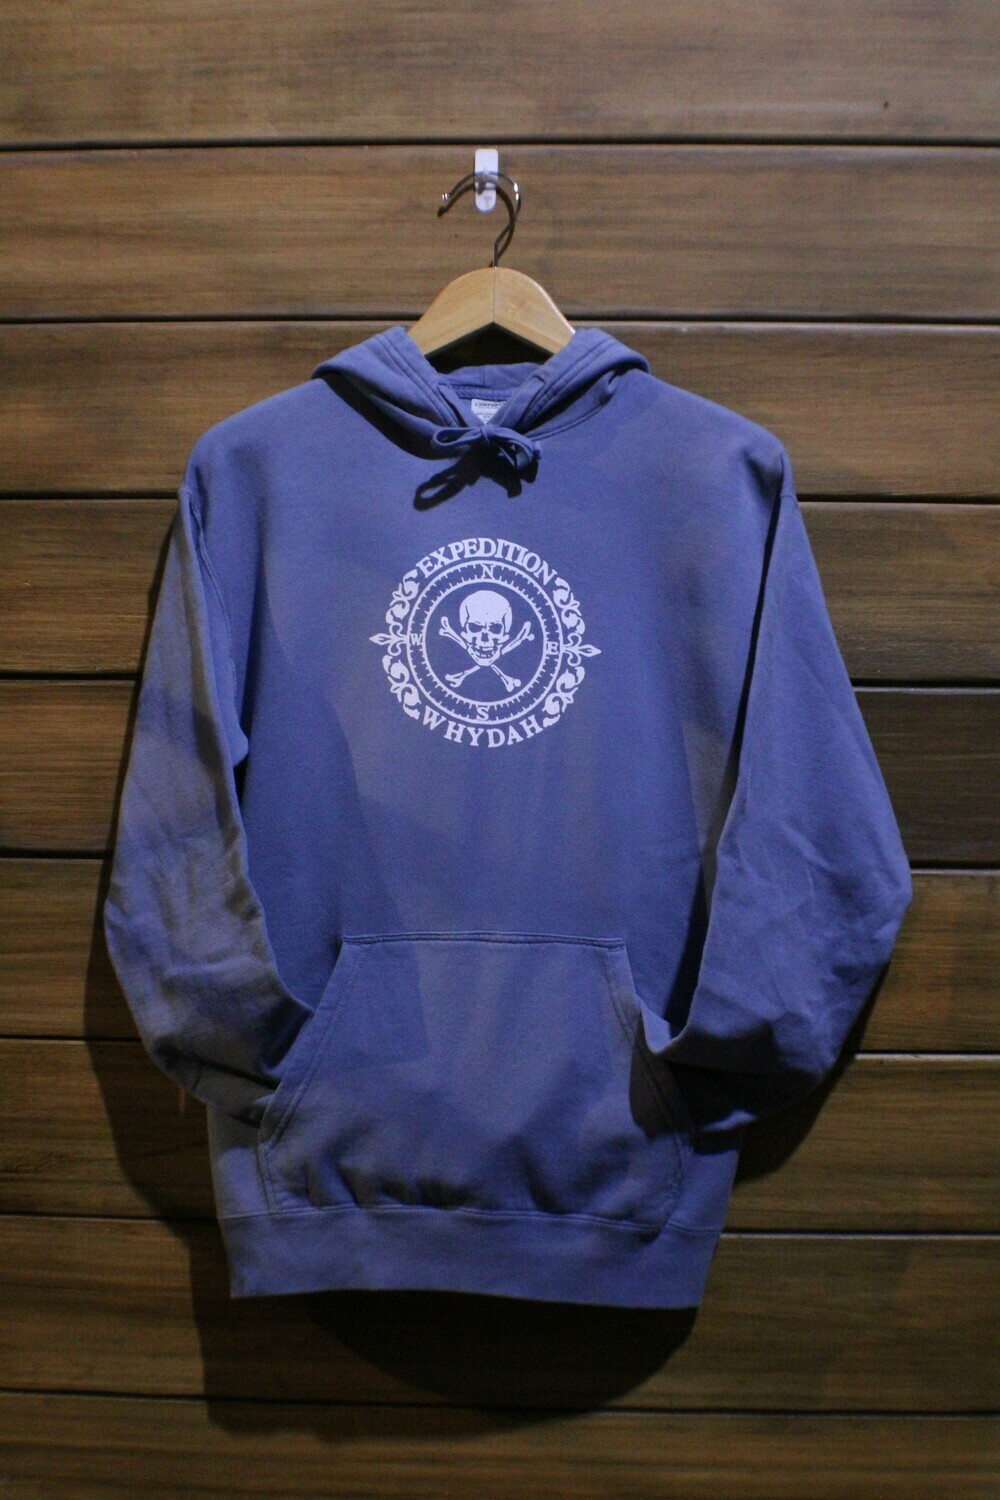 Expedition Whydah Sweatshirt